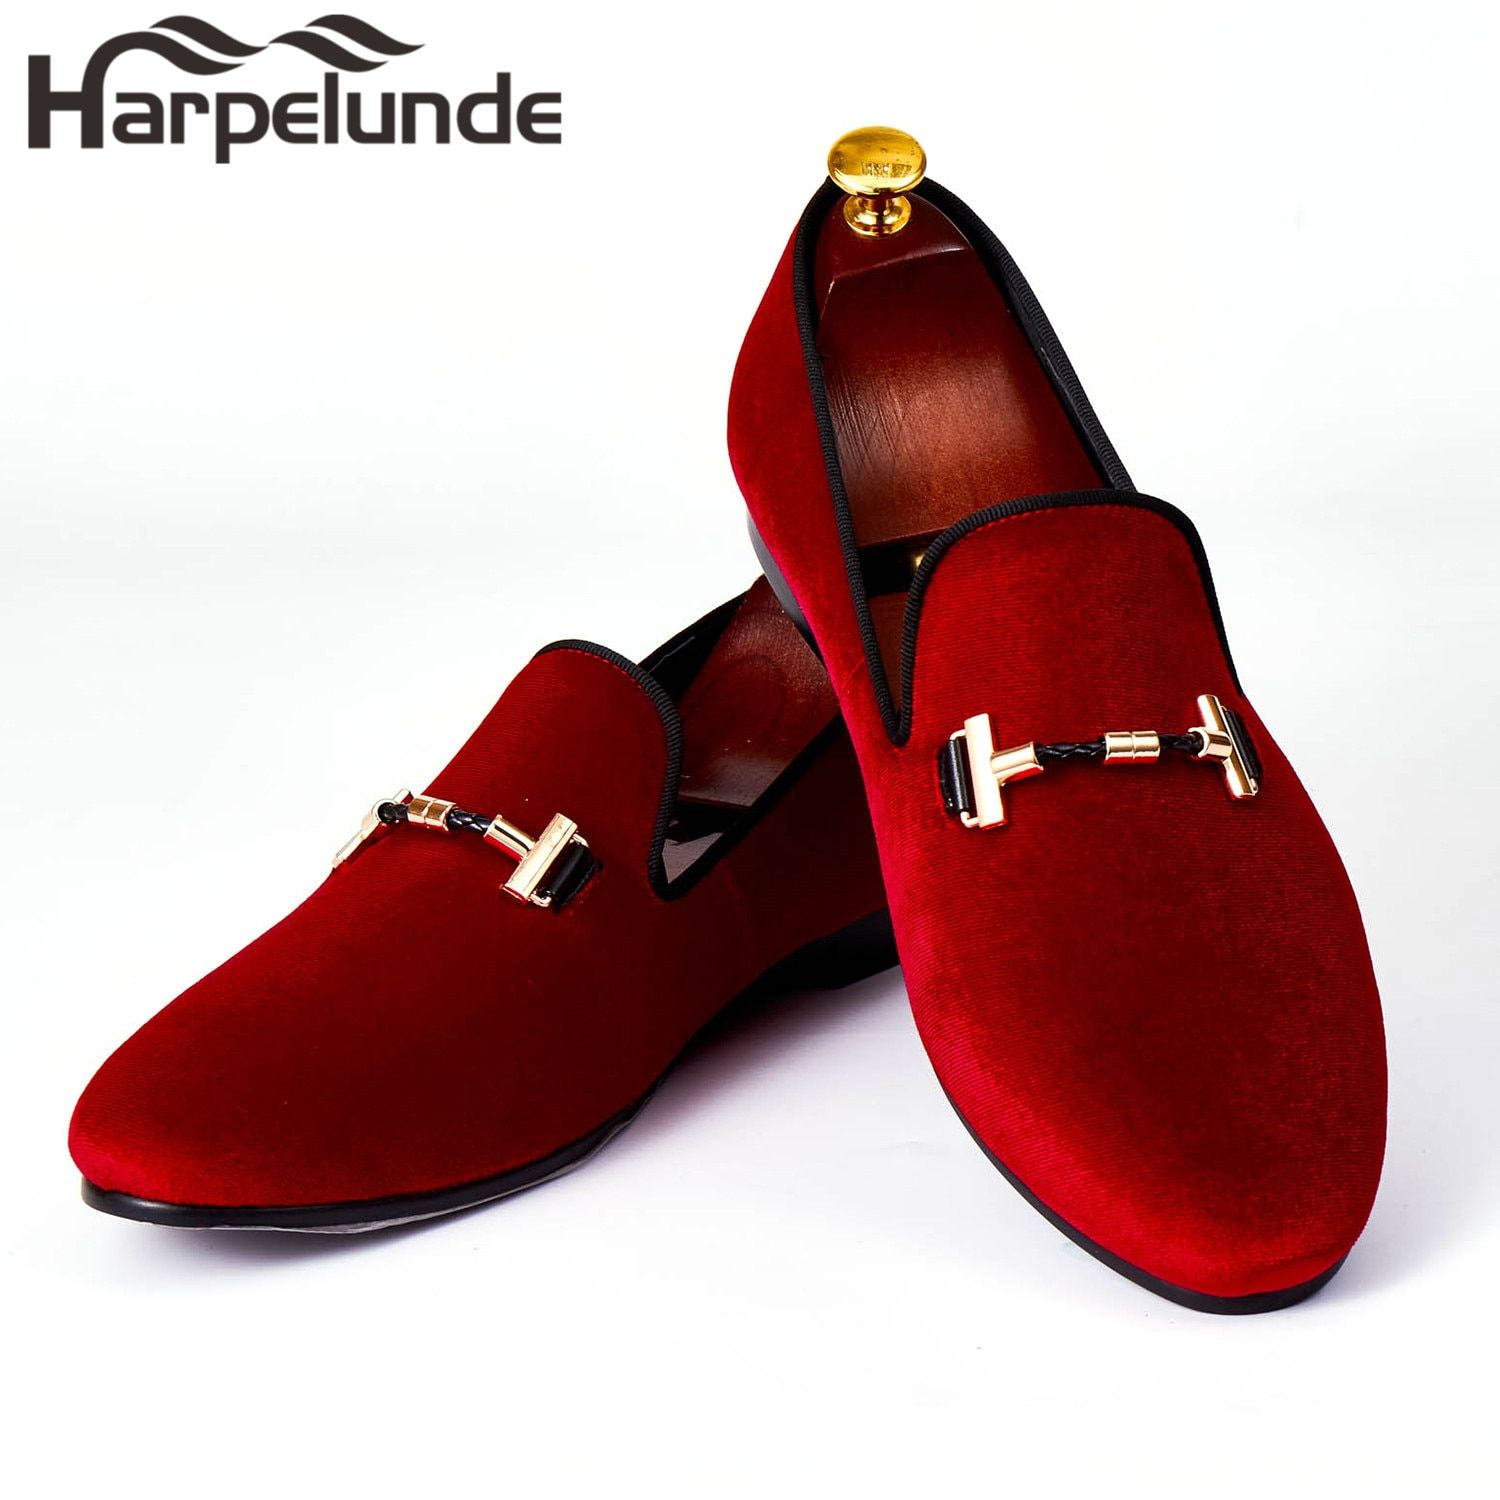 Harpelunde Italian Men Dress Shoes Buckle <font><b>Strap</b></font> Wedding Shoes Red Velvet Loafers Size 7-14